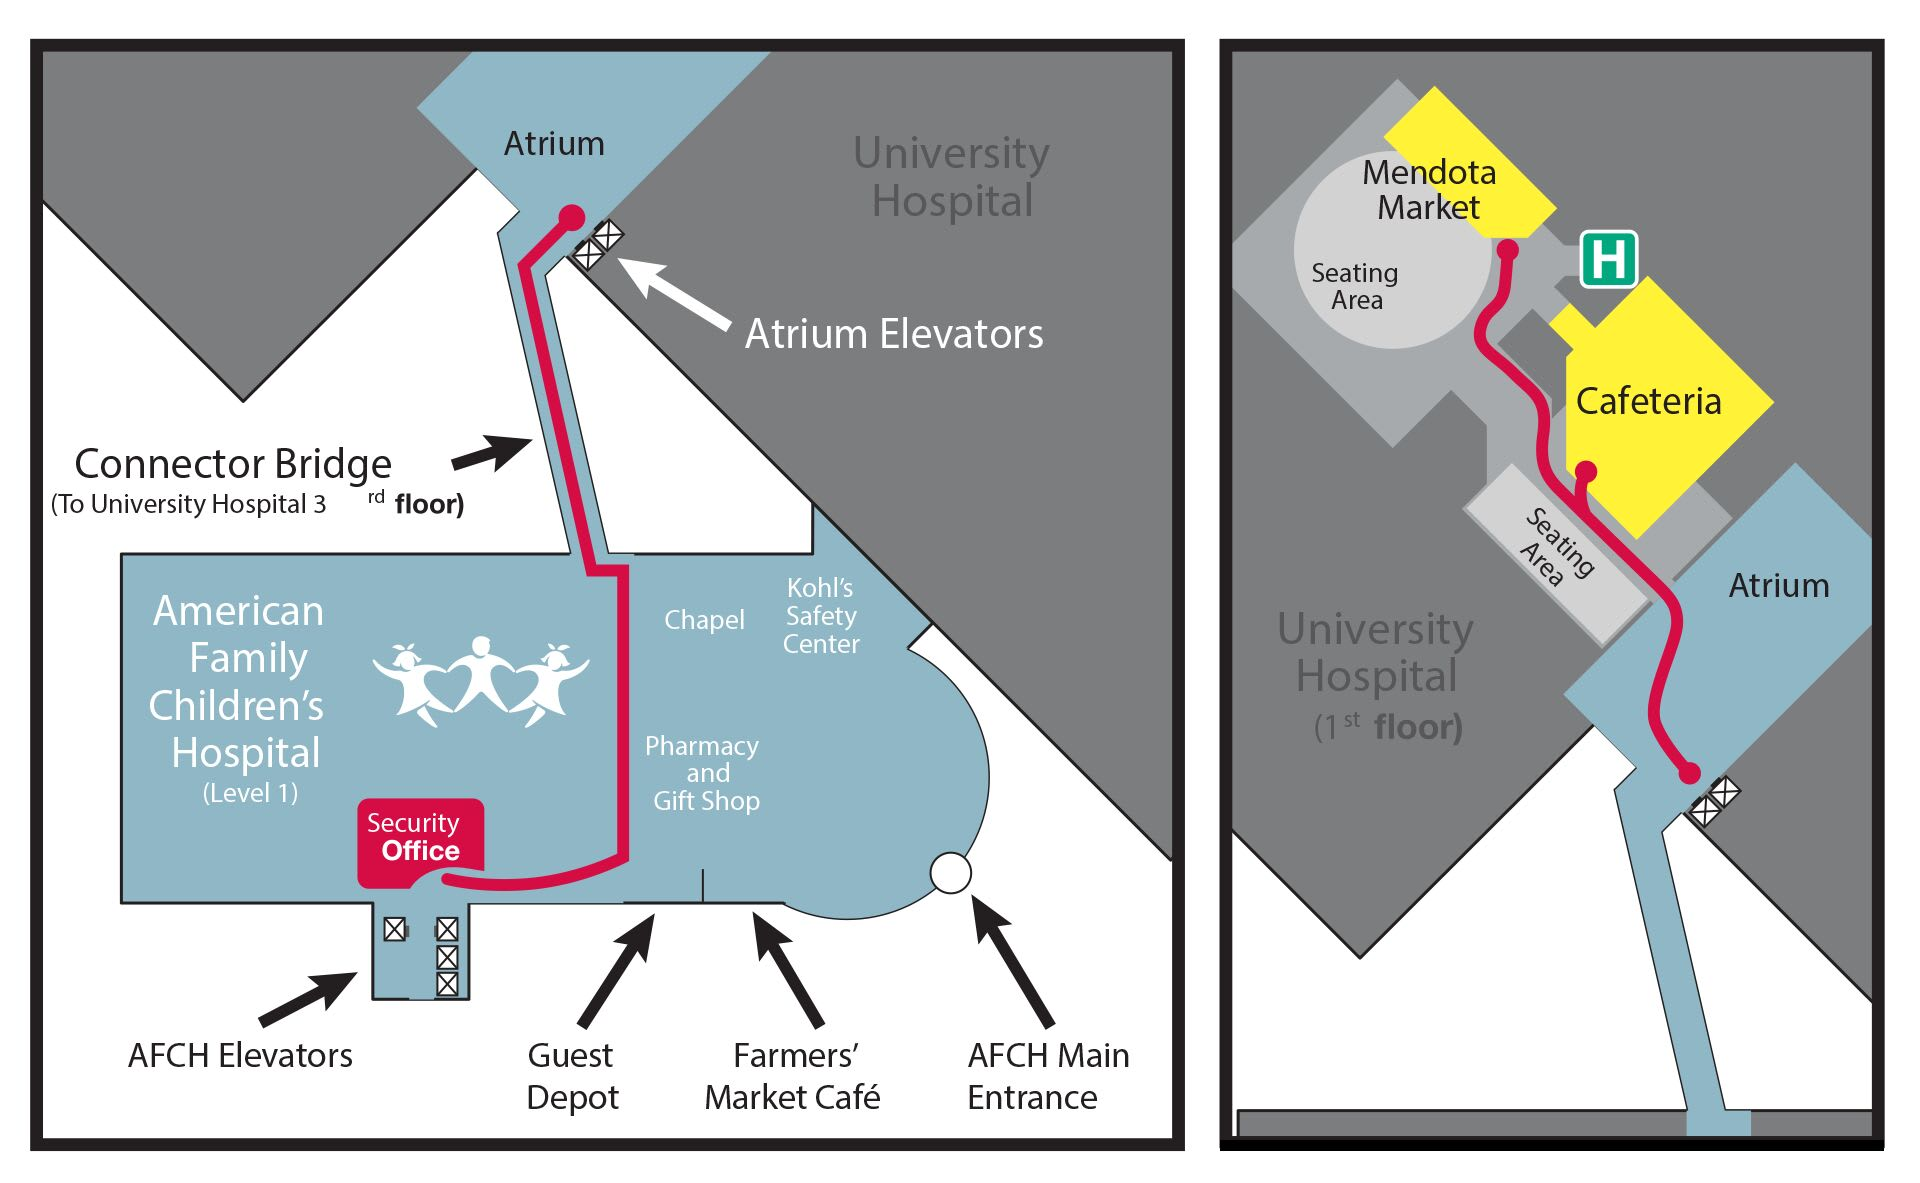 Image of map showing directions to University Hospital from American Family Children's Hospital